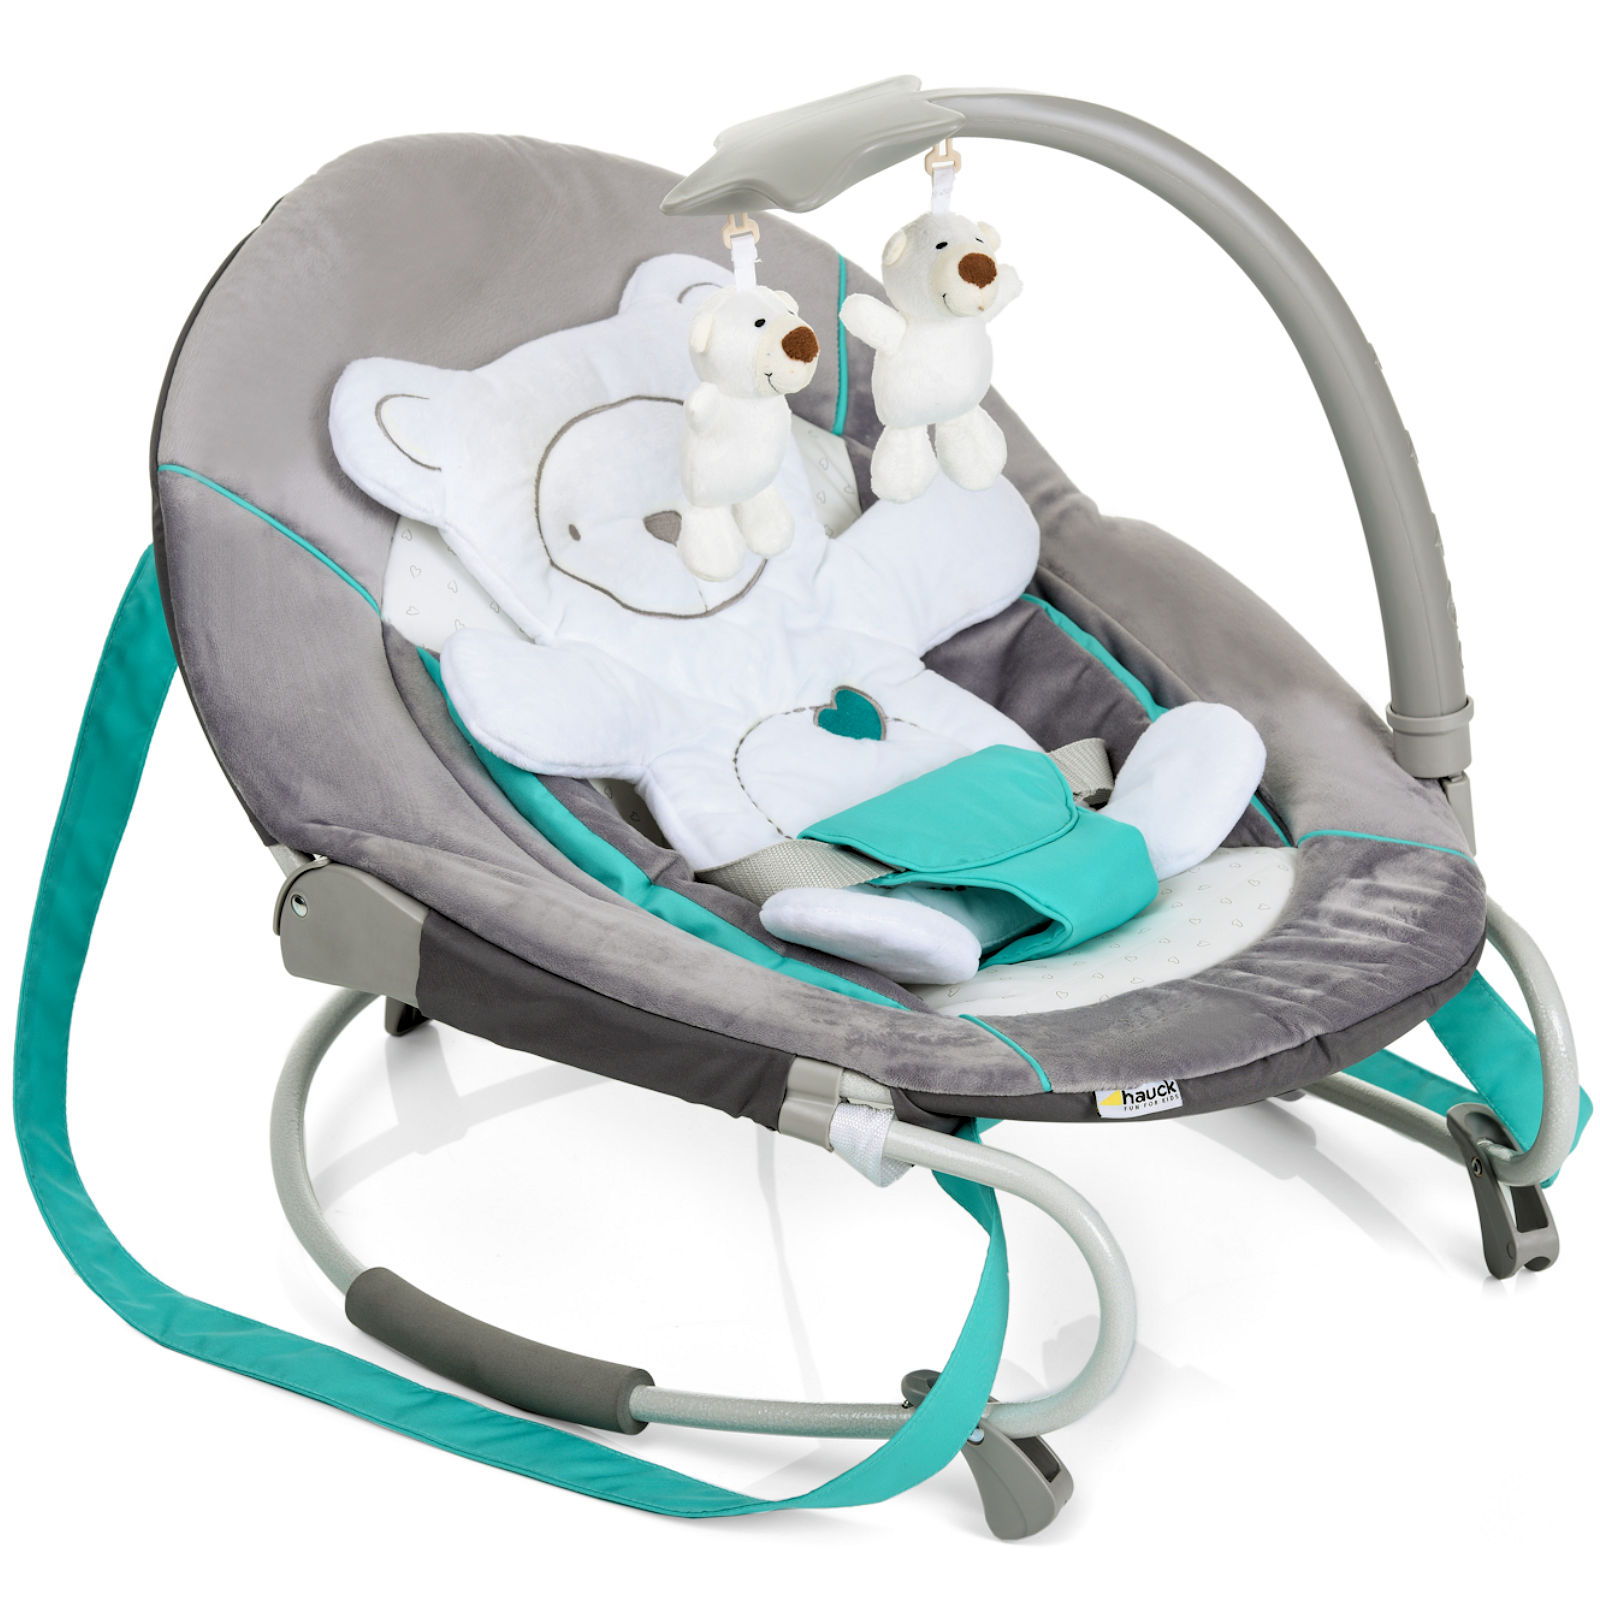 graco baby swing chair uk lift alternative hauck leisure bouncer rocker hearts buy at